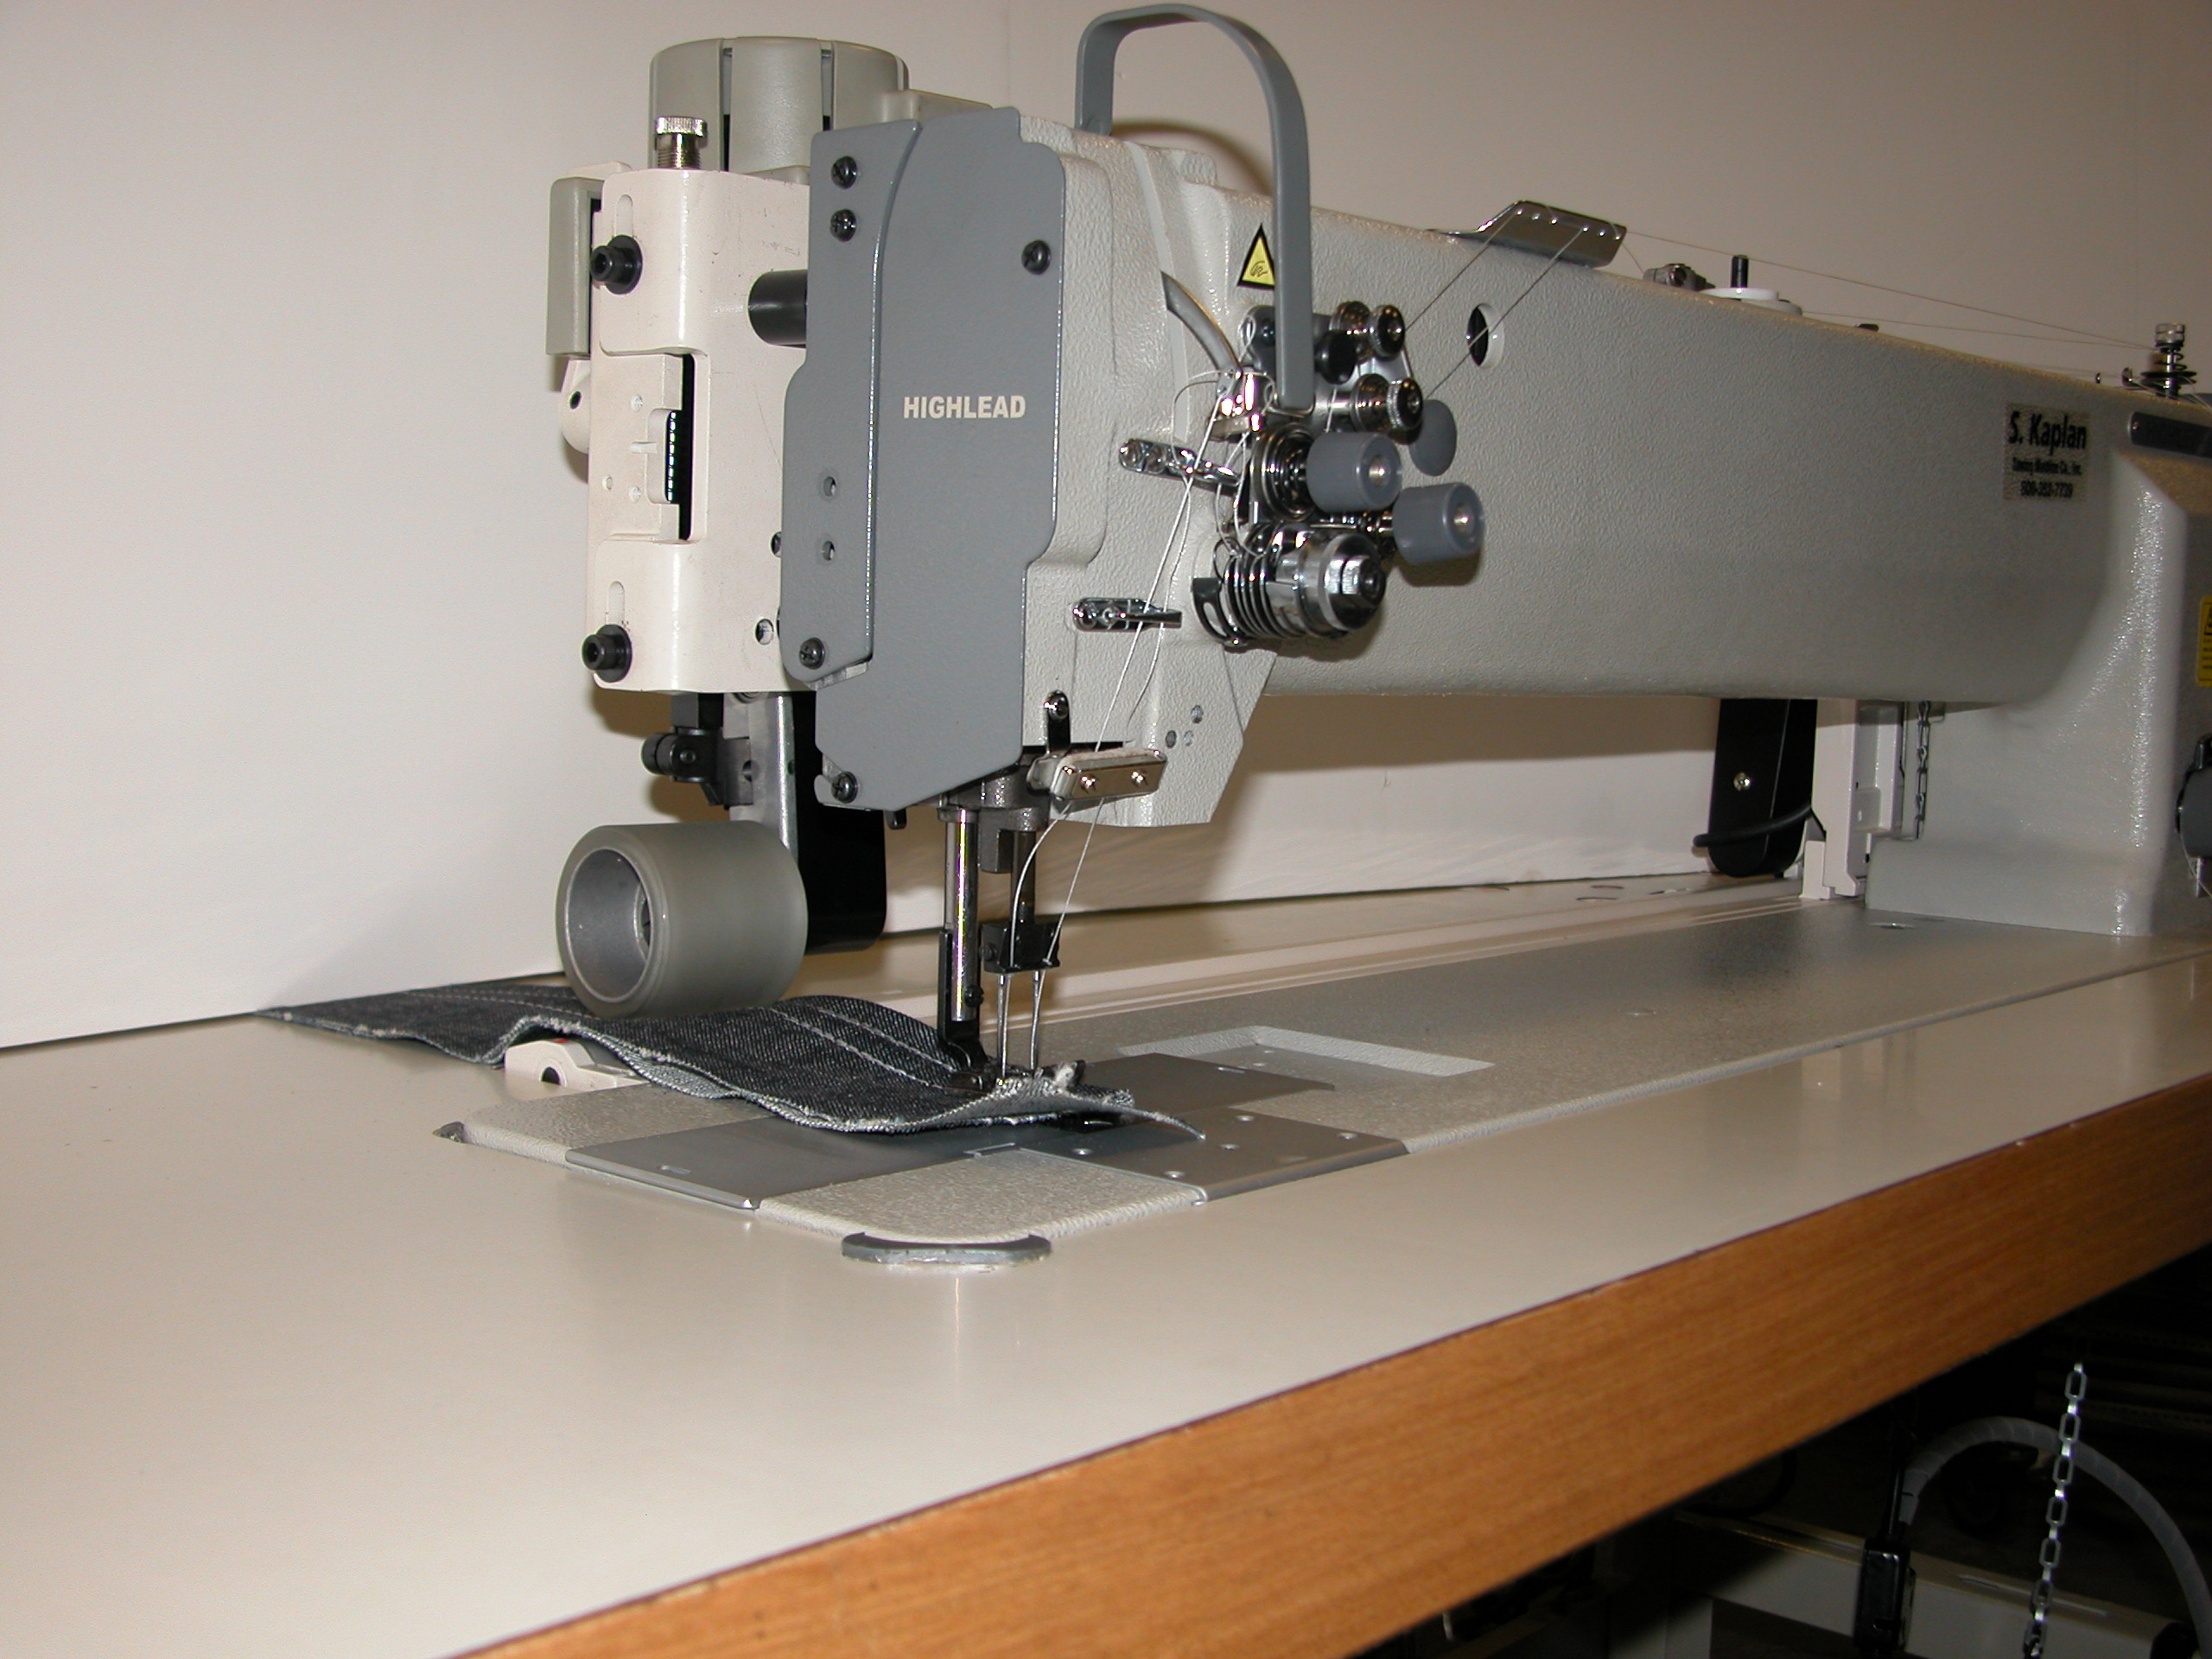 Highlead GC20698-1 & GC20698-2 Sewing Machines